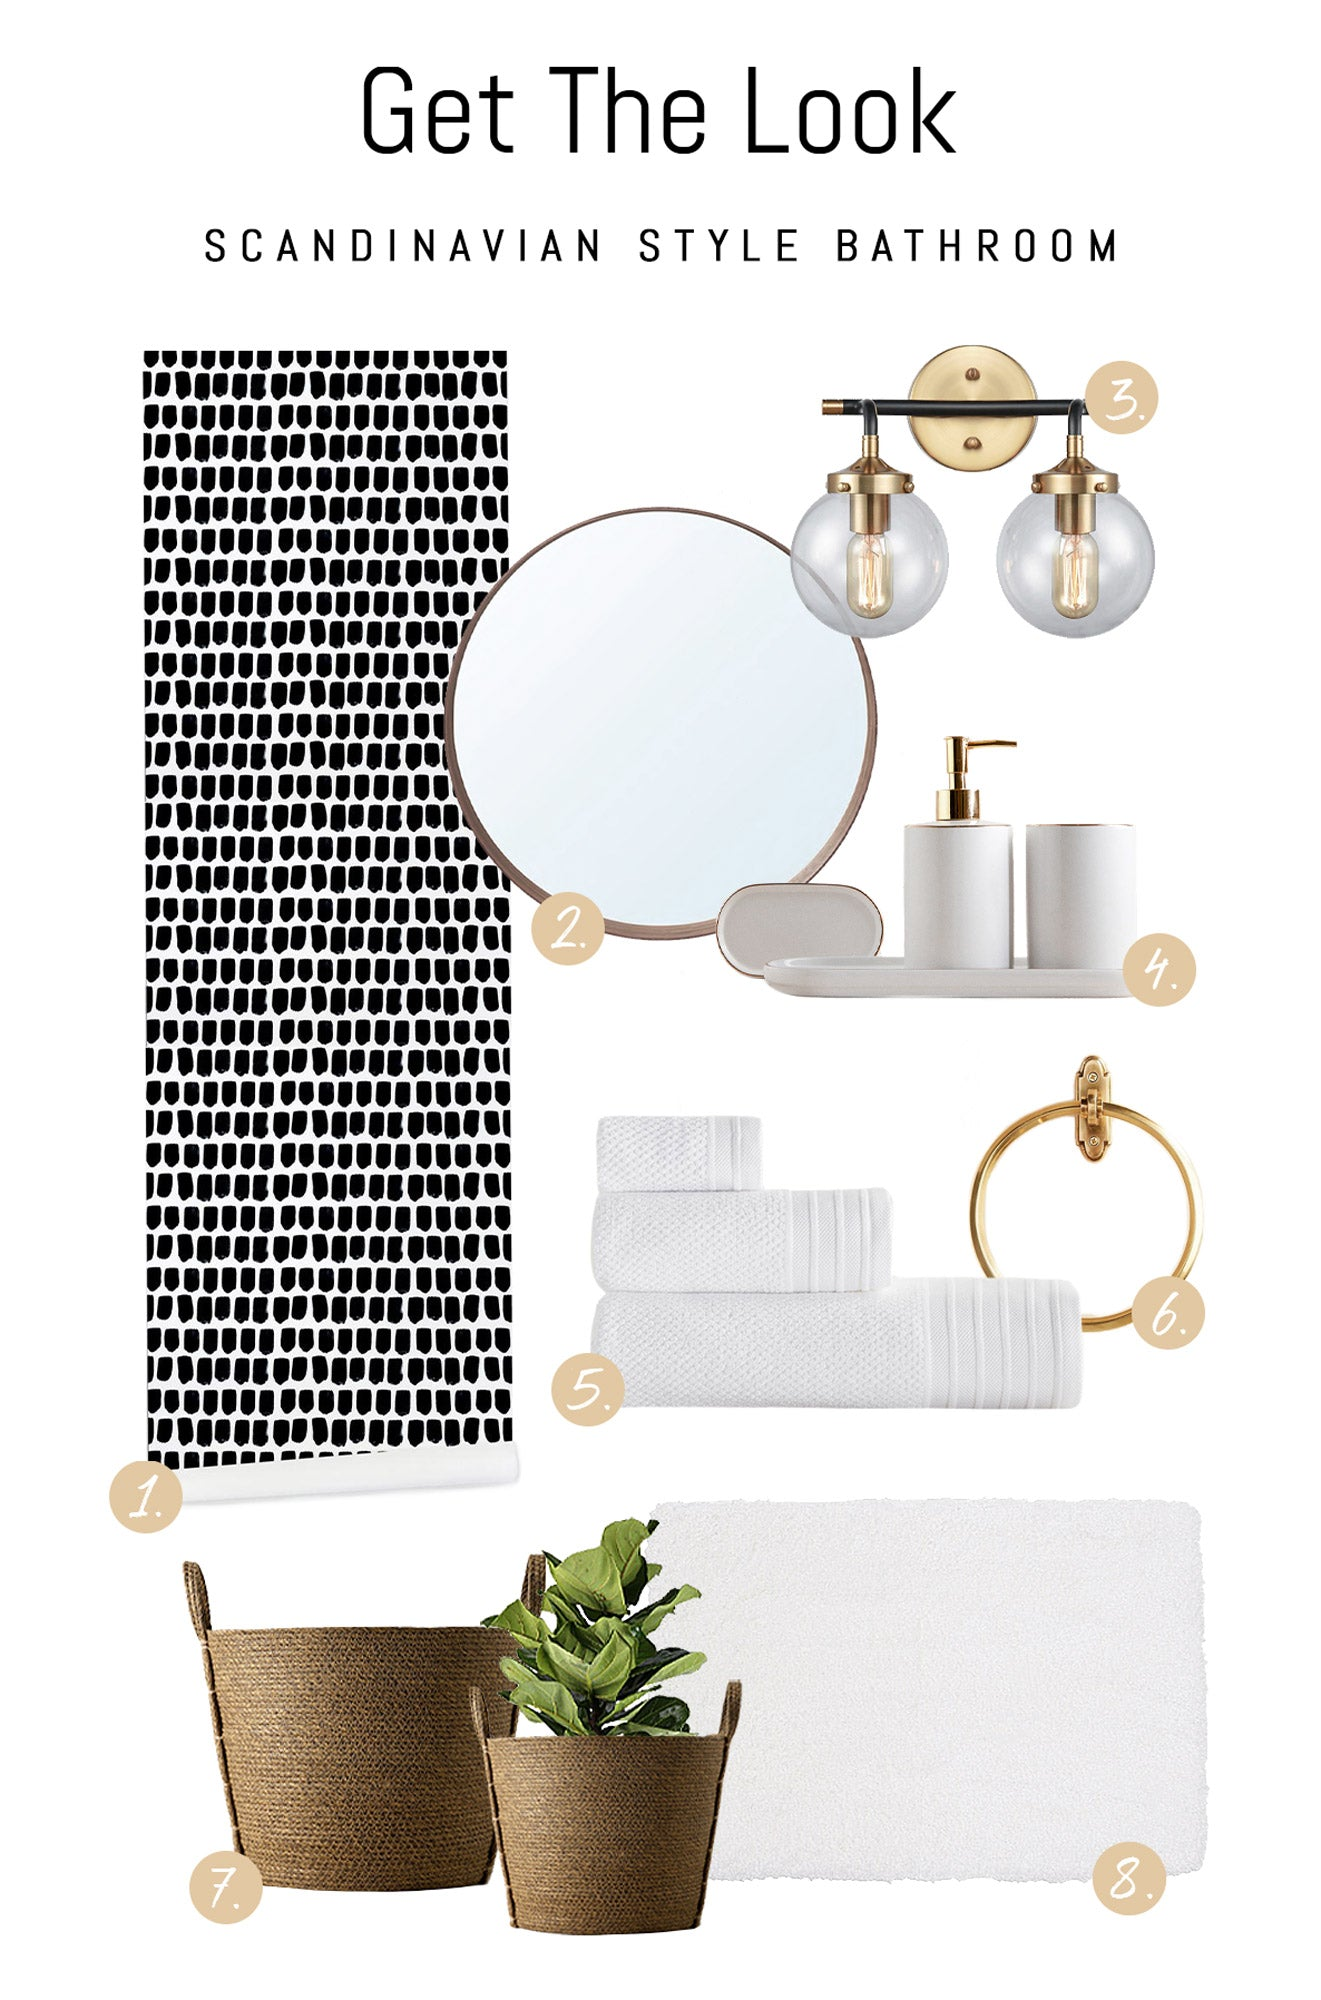 Shop Scandinavian style bathroom decor